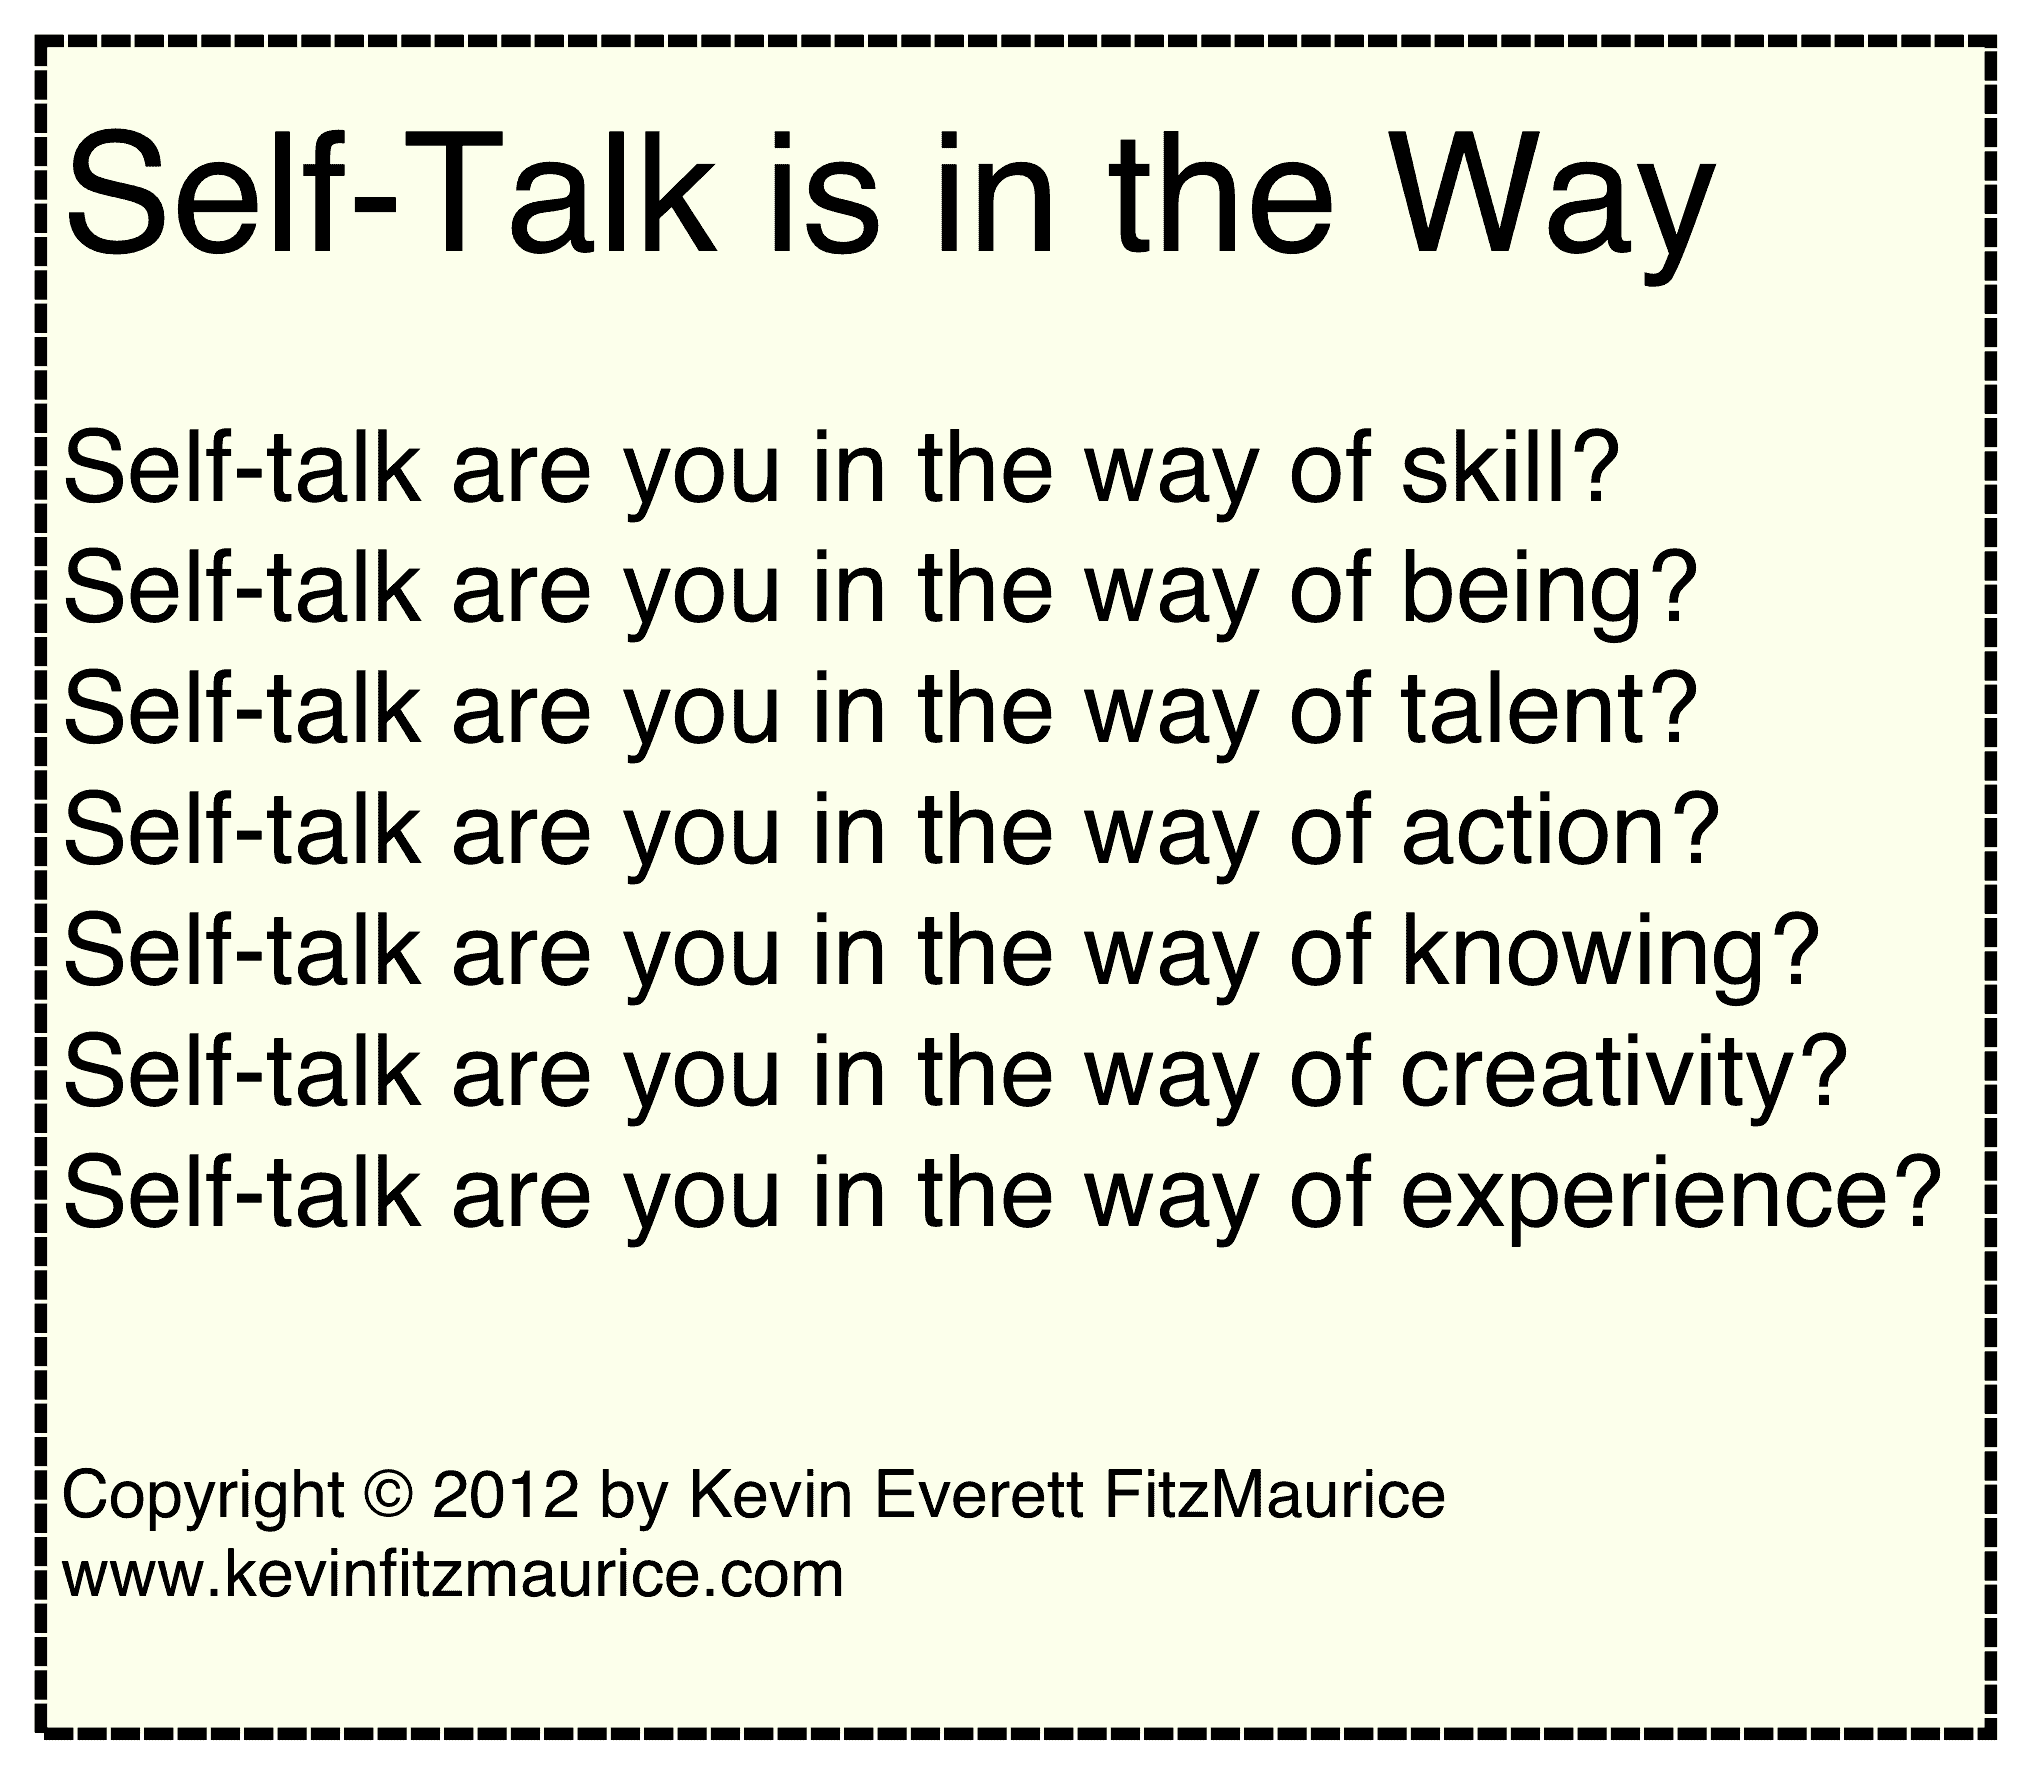 self-talk is in the way